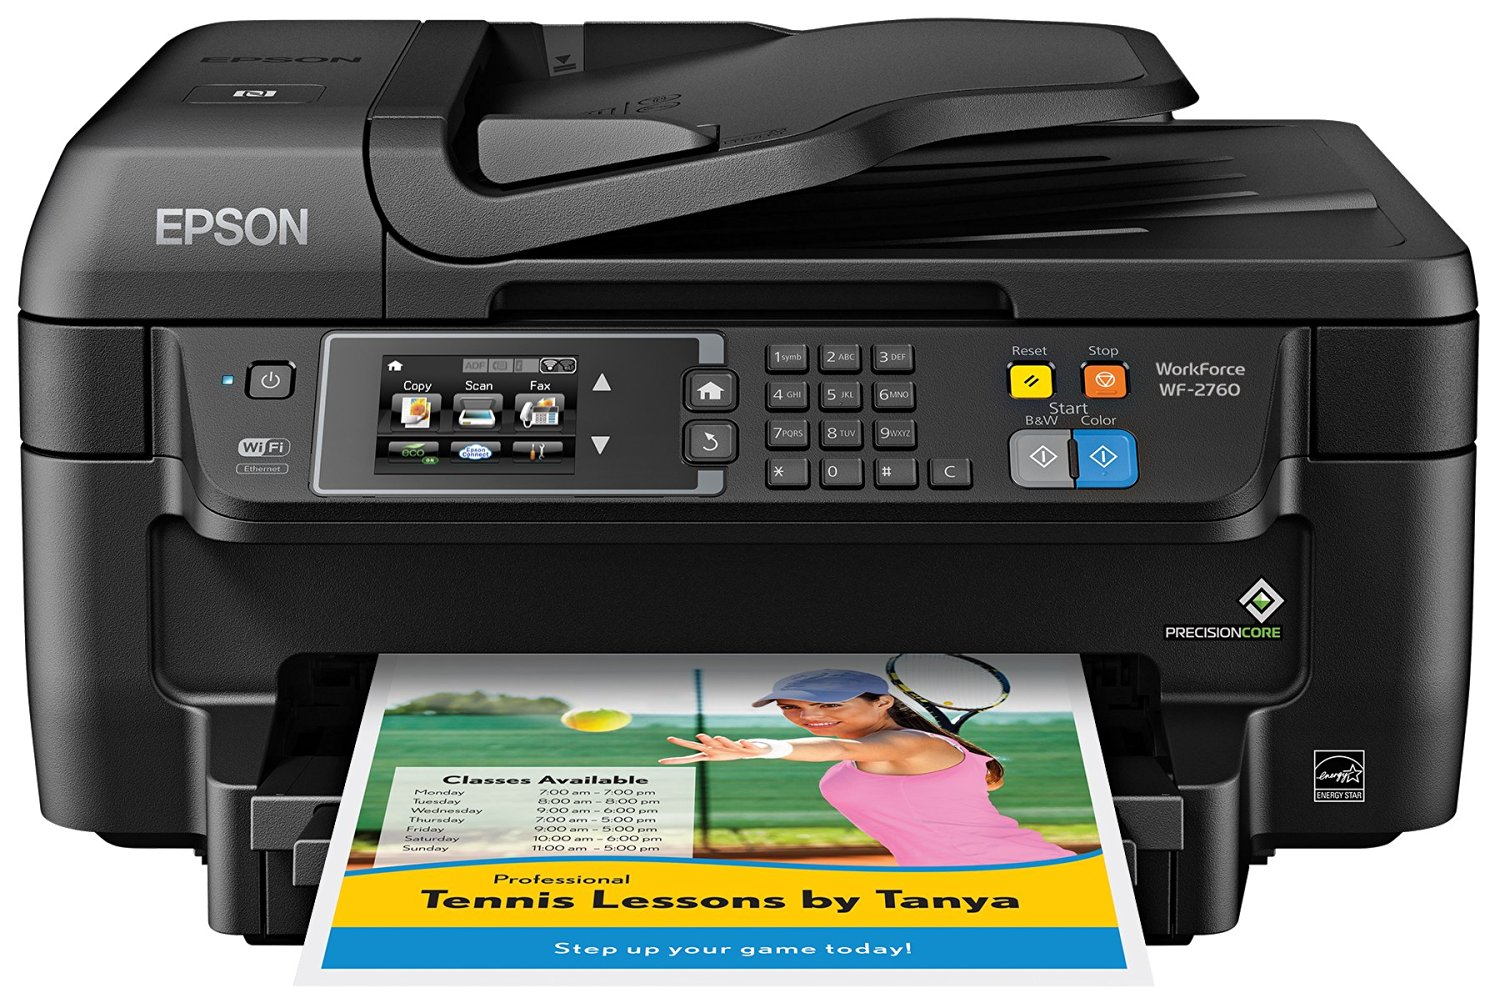 Epson WorkForce Wireless Color Printer